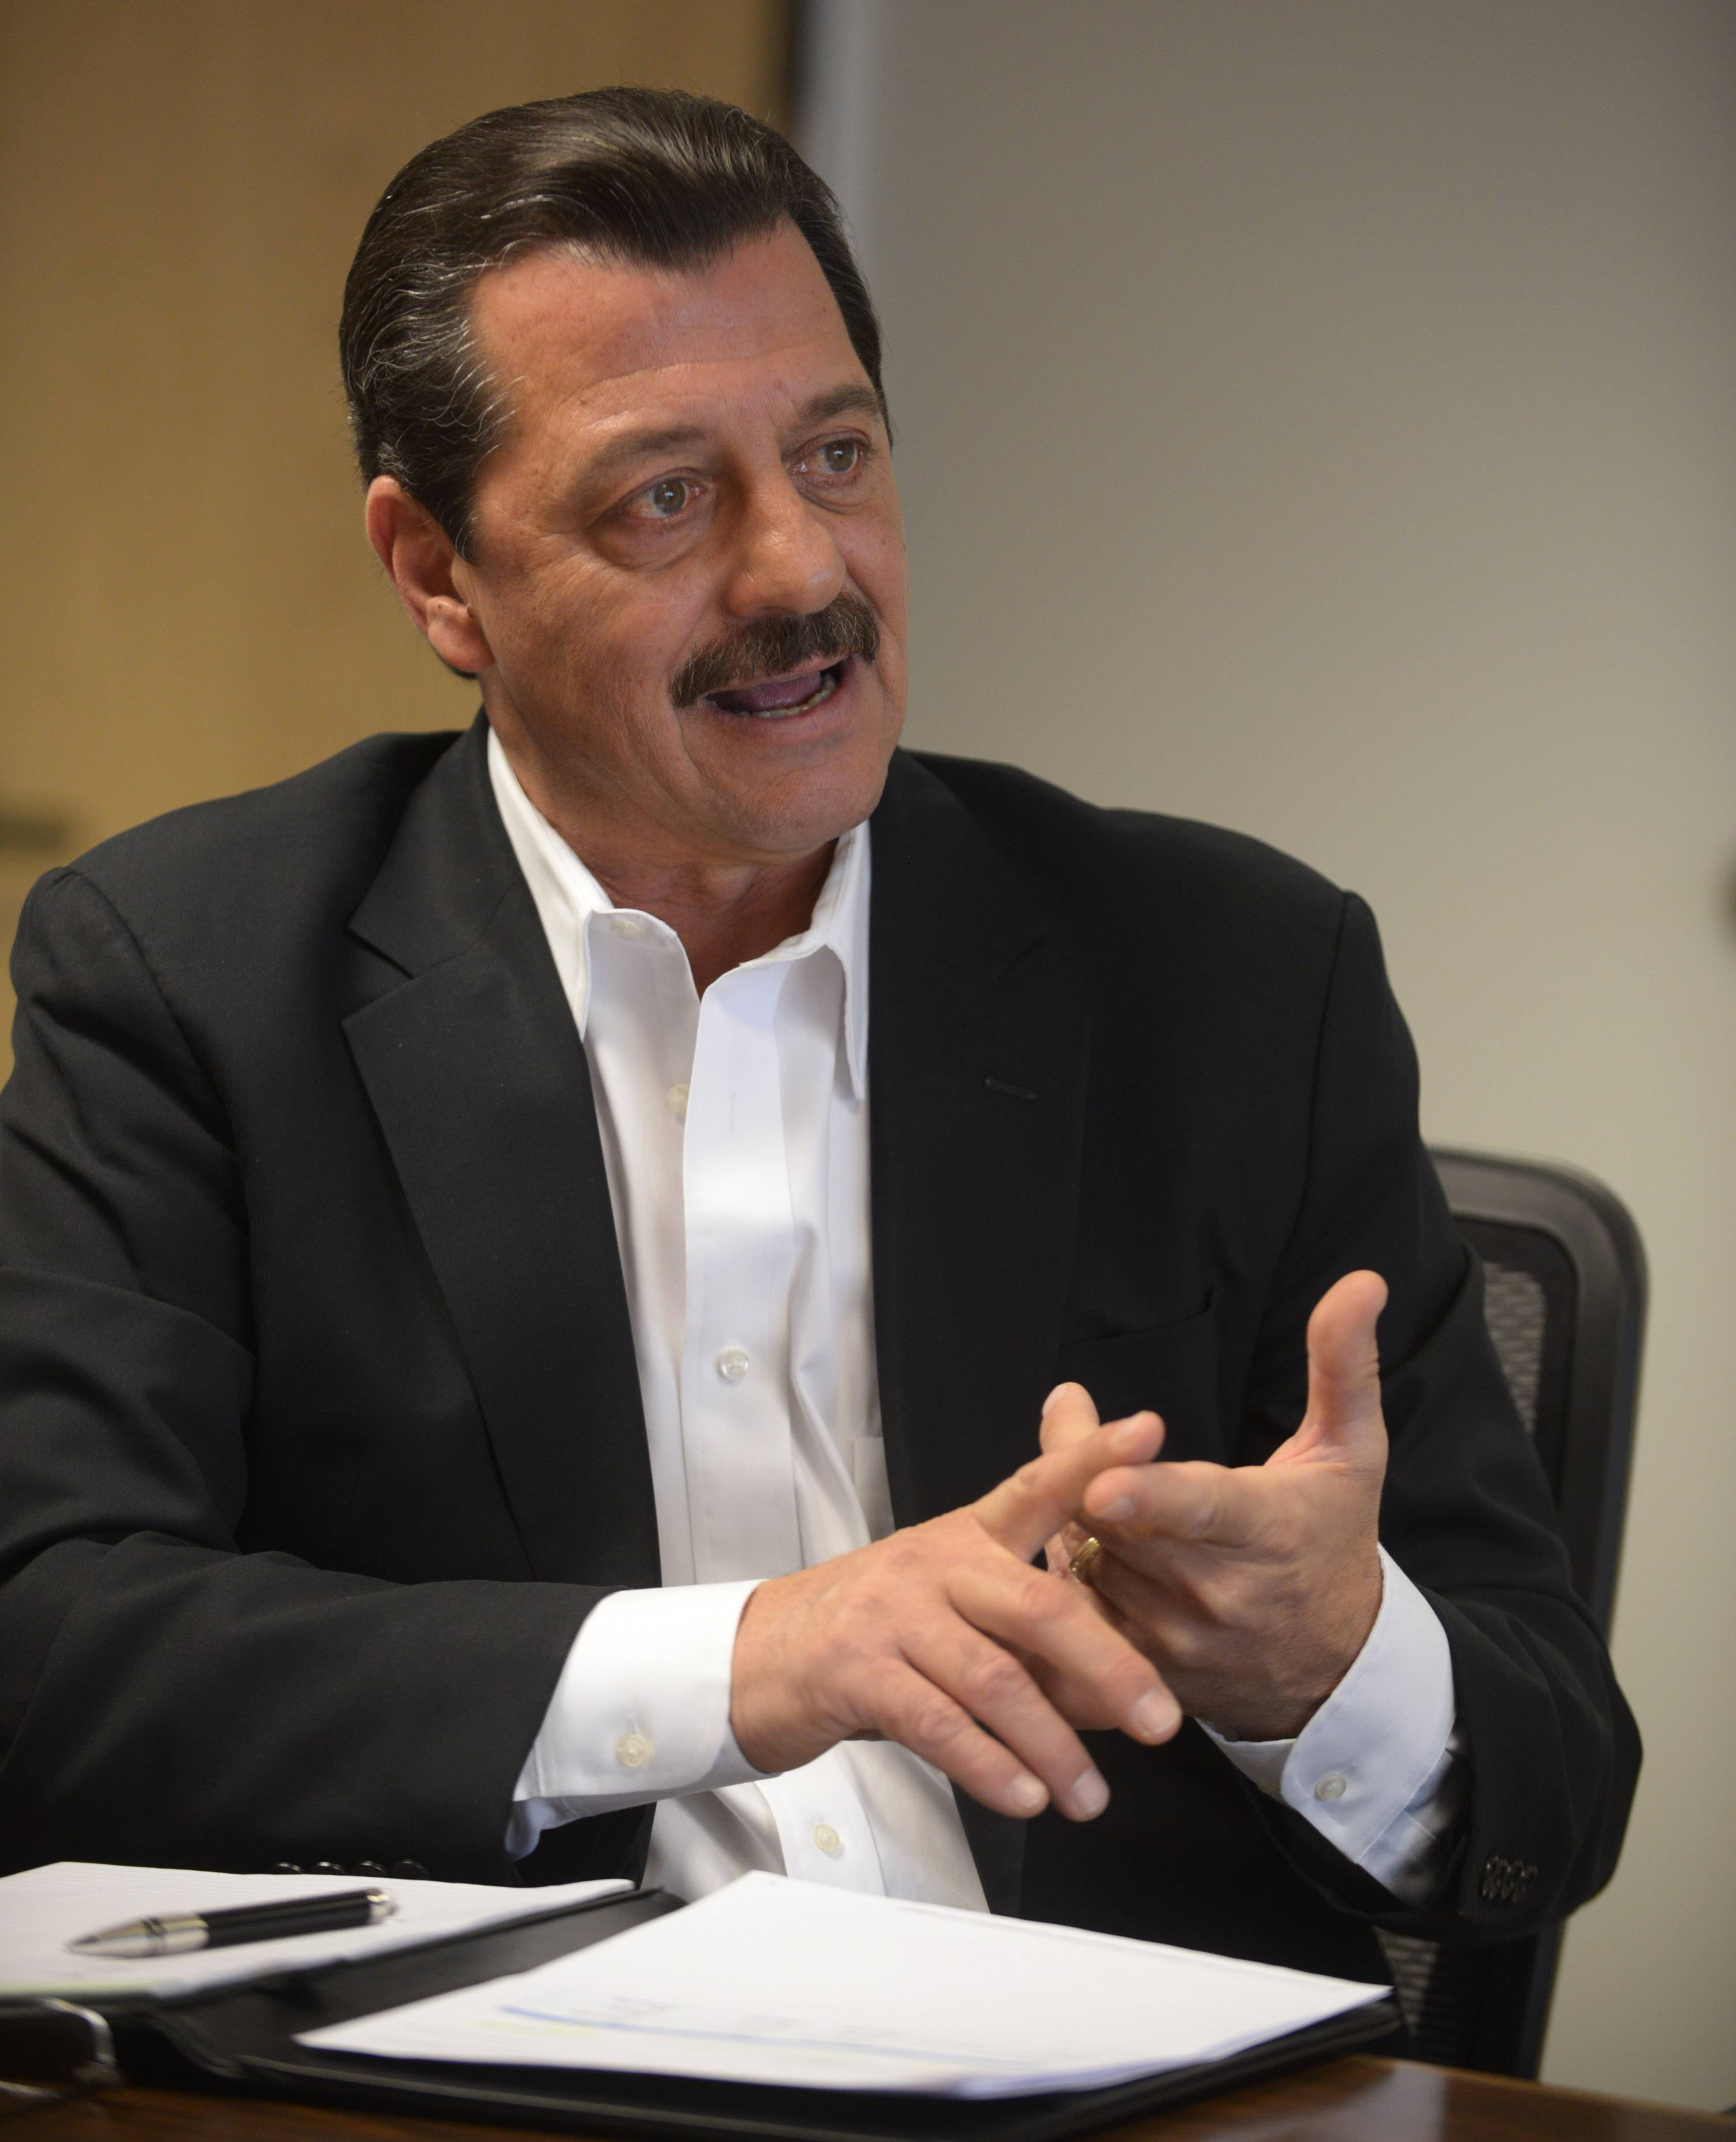 Wheeling Village President Dean Argiris speaks during an interview with the Daily Herald.